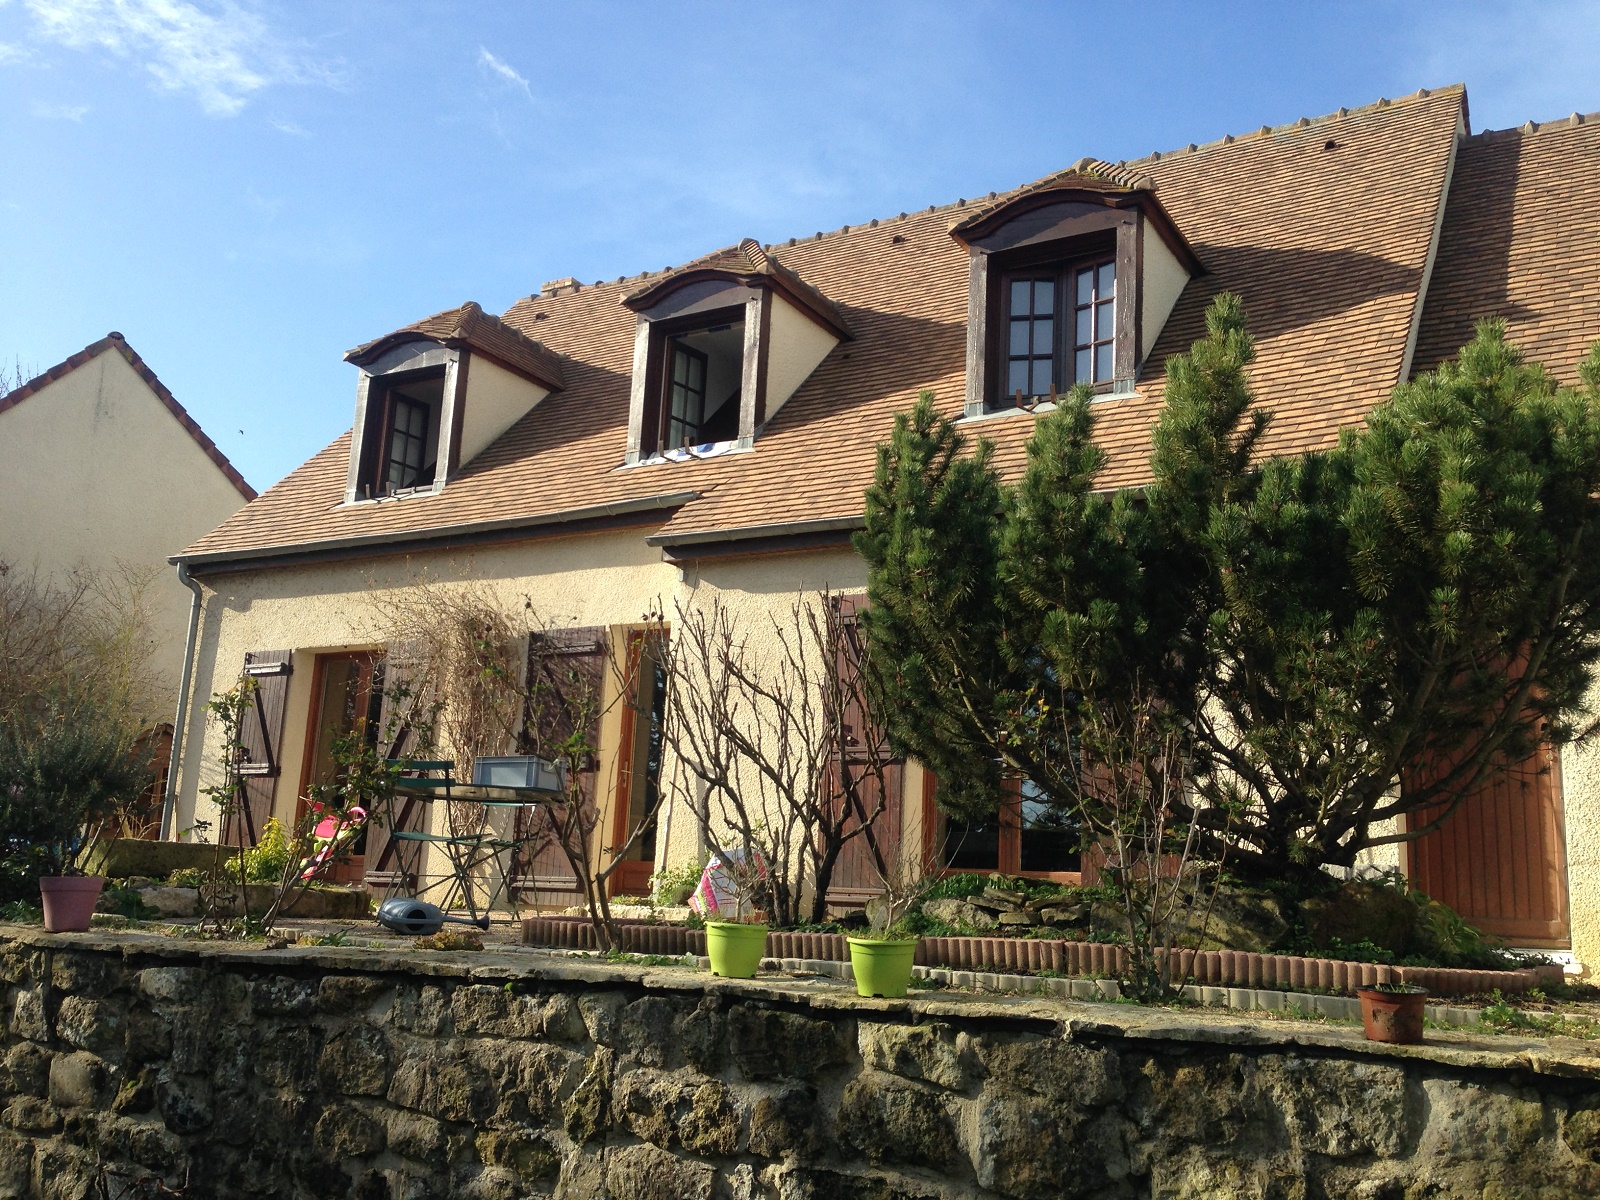 Vente appartement en tage lev avec 3 chambres orgeval for Maison traditionnelle 78